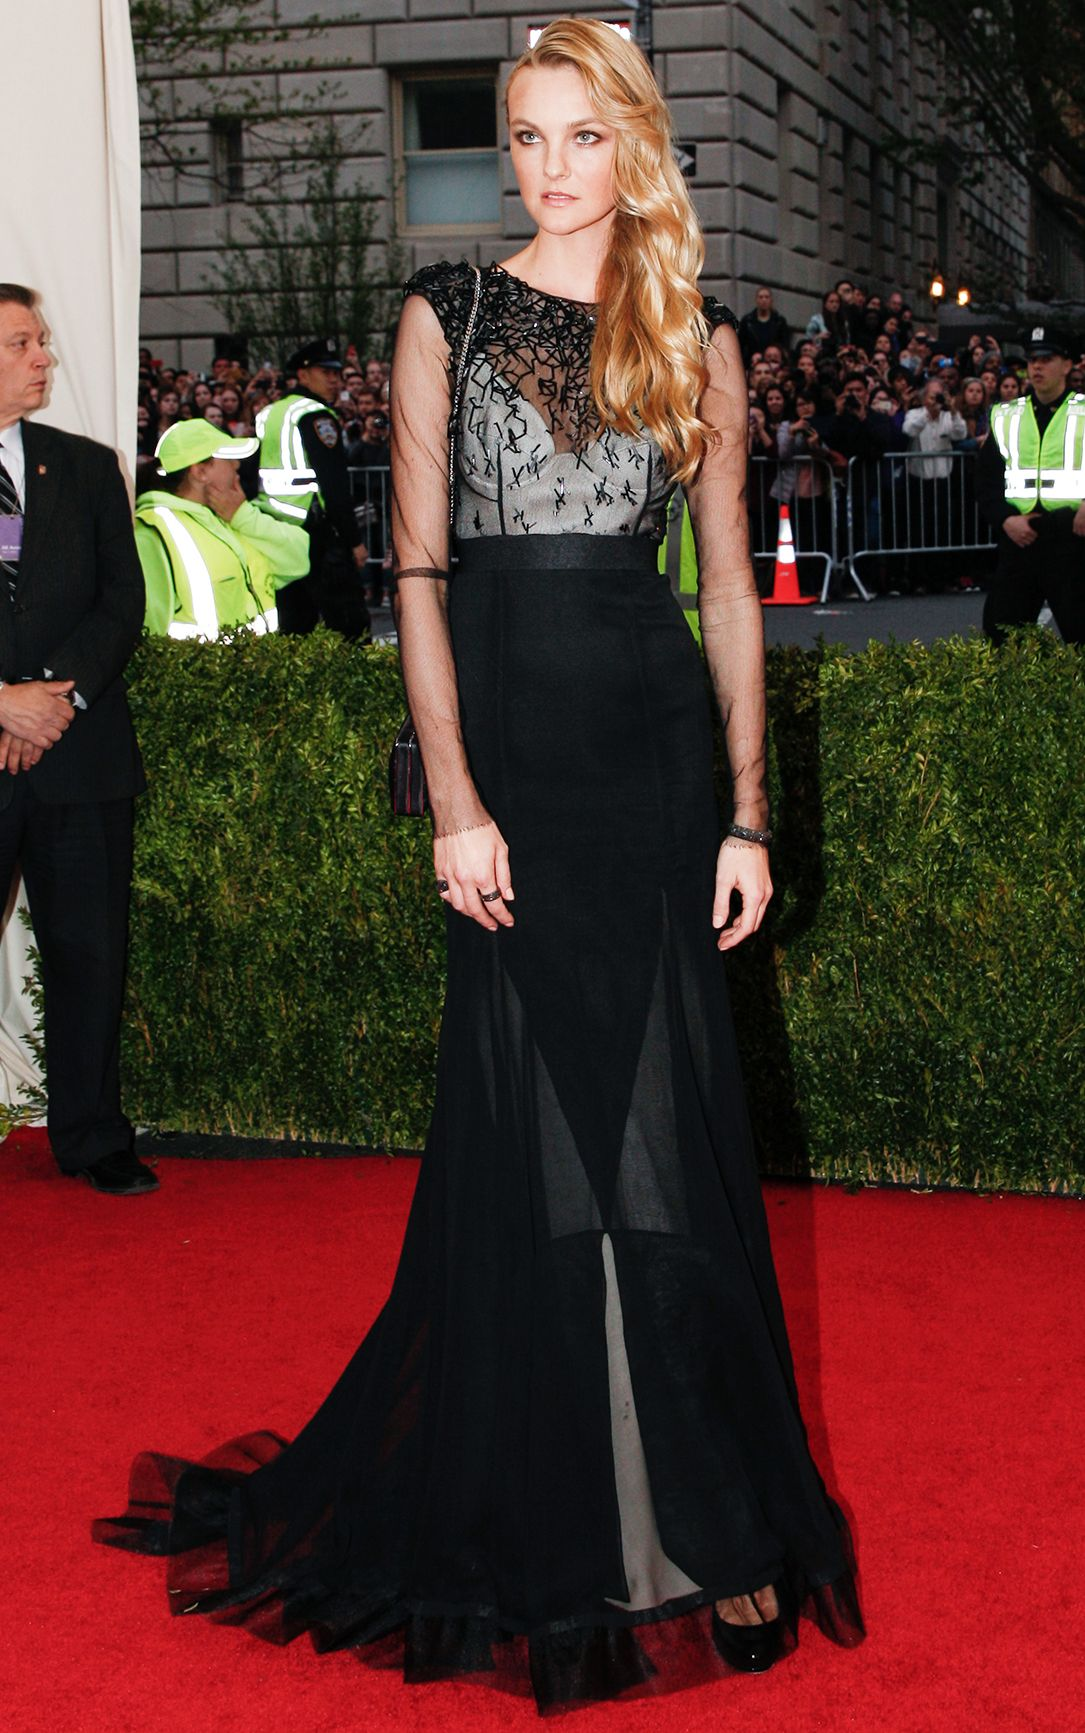 The Most Gorgeous Looks From The Met Gala | Fashion, Met ...